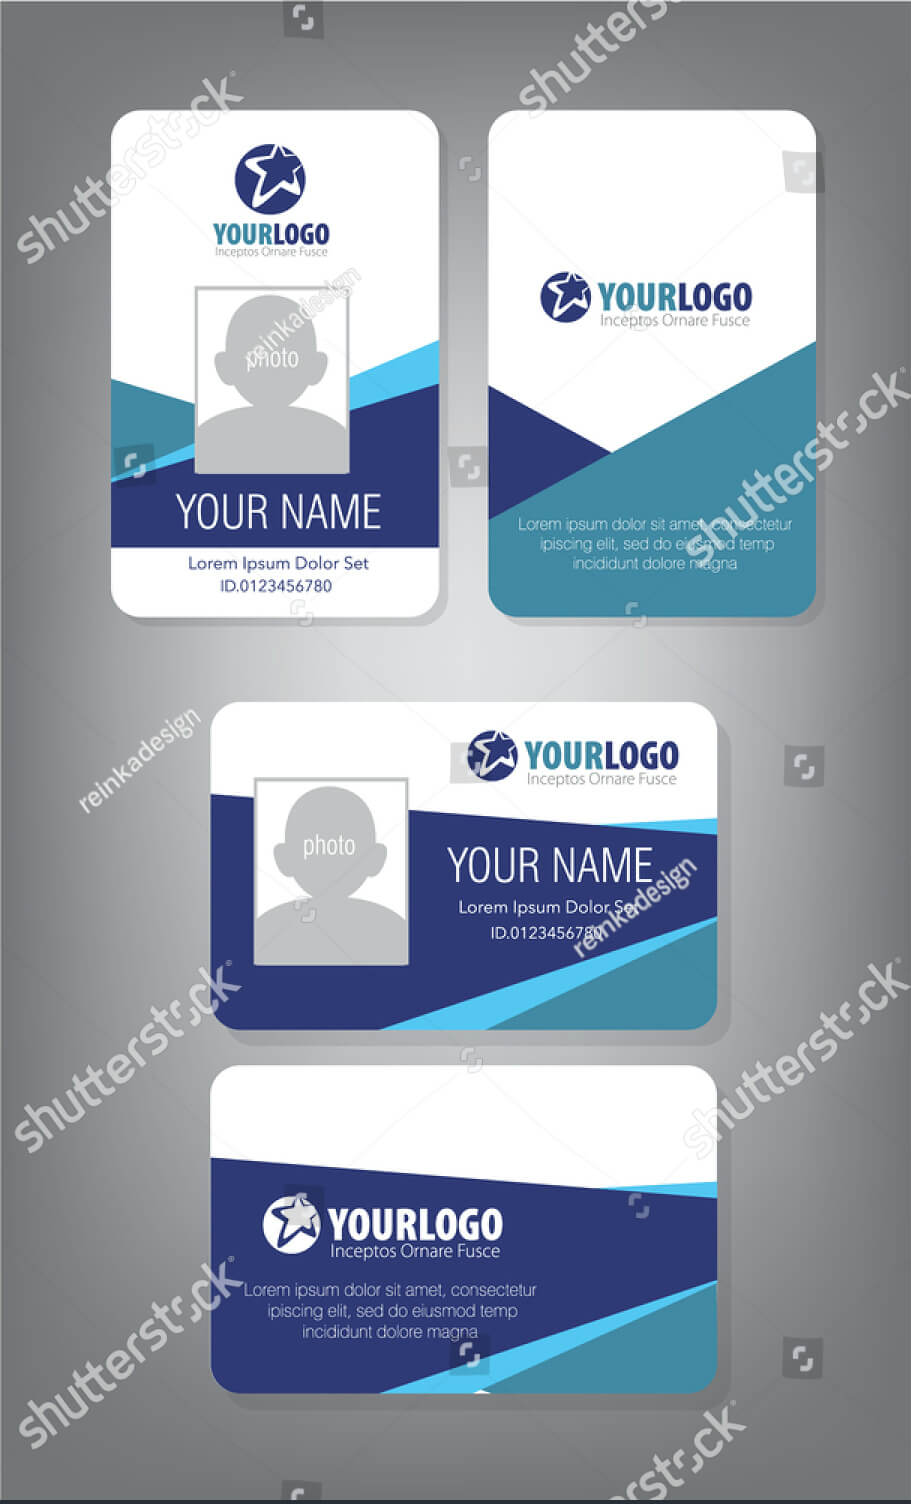 43+ Professional Id Card Designs - Psd, Eps, Ai, Word | Free Pertaining To Portrait Id Card Template